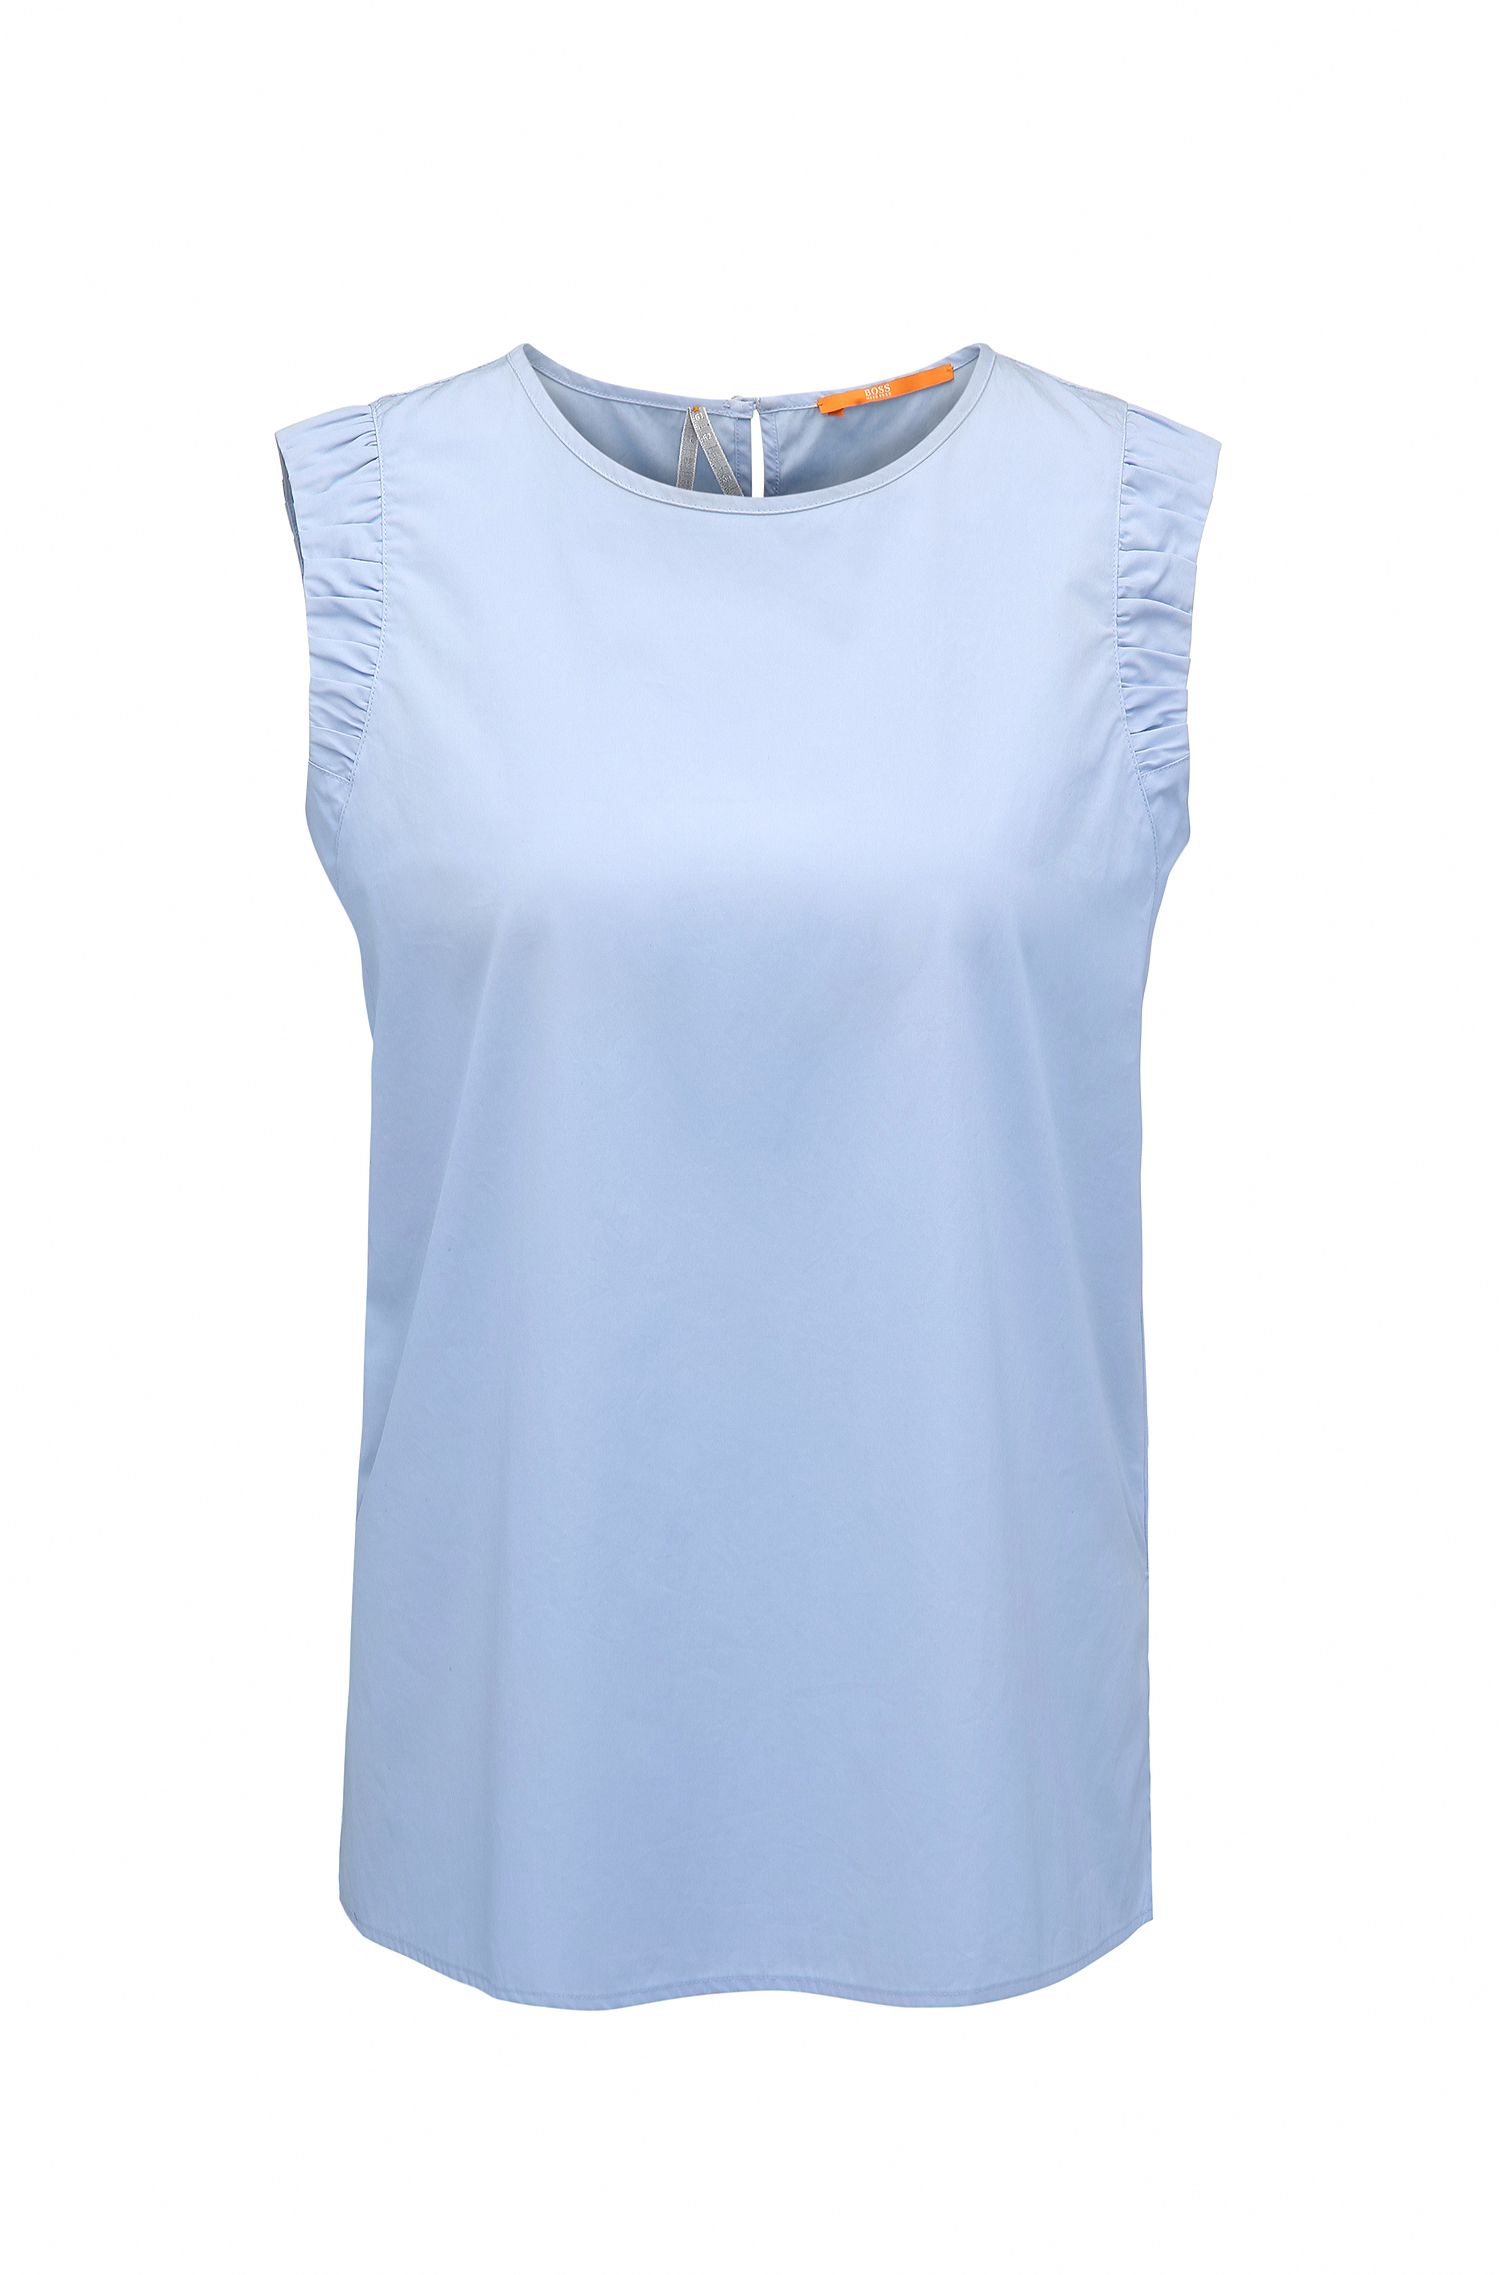 Sleeveless cotton poplin blouse with side slits